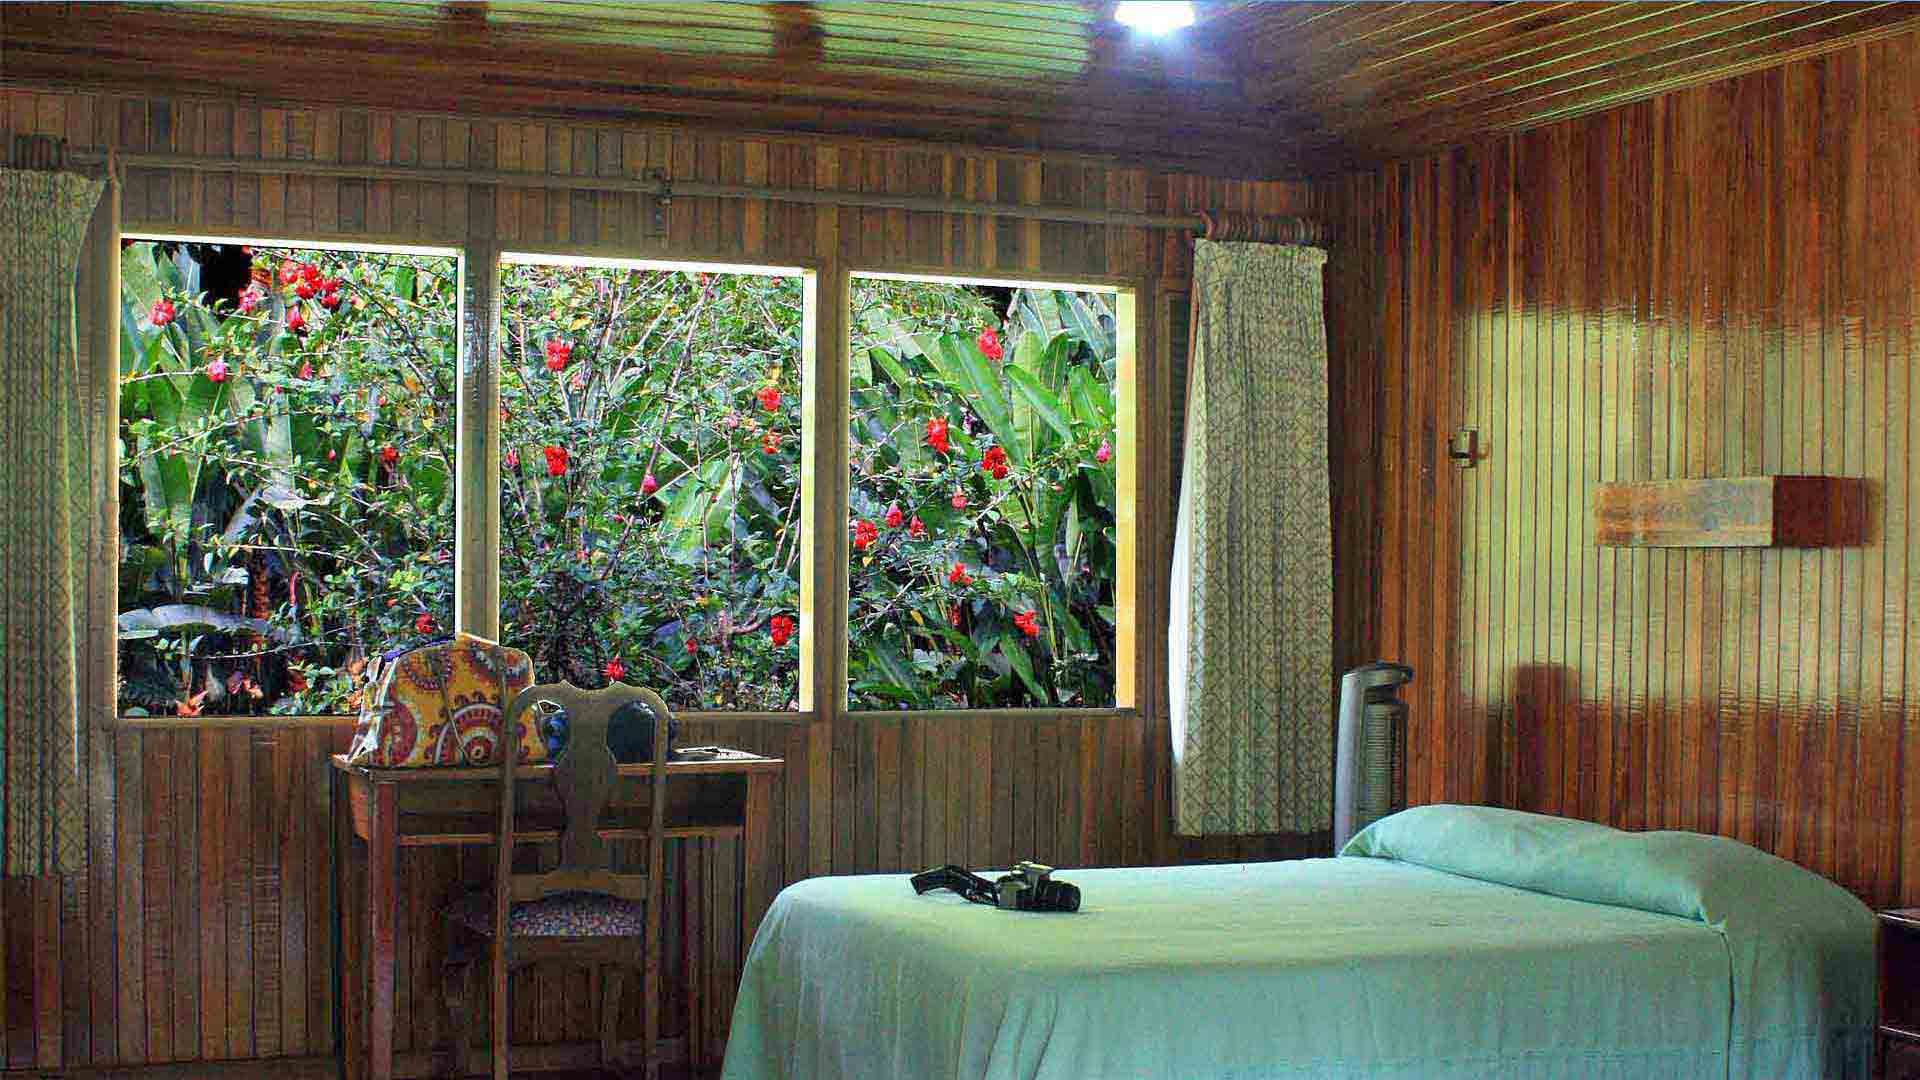 Wood-paneled Bedroom with Screened Window and Flowers